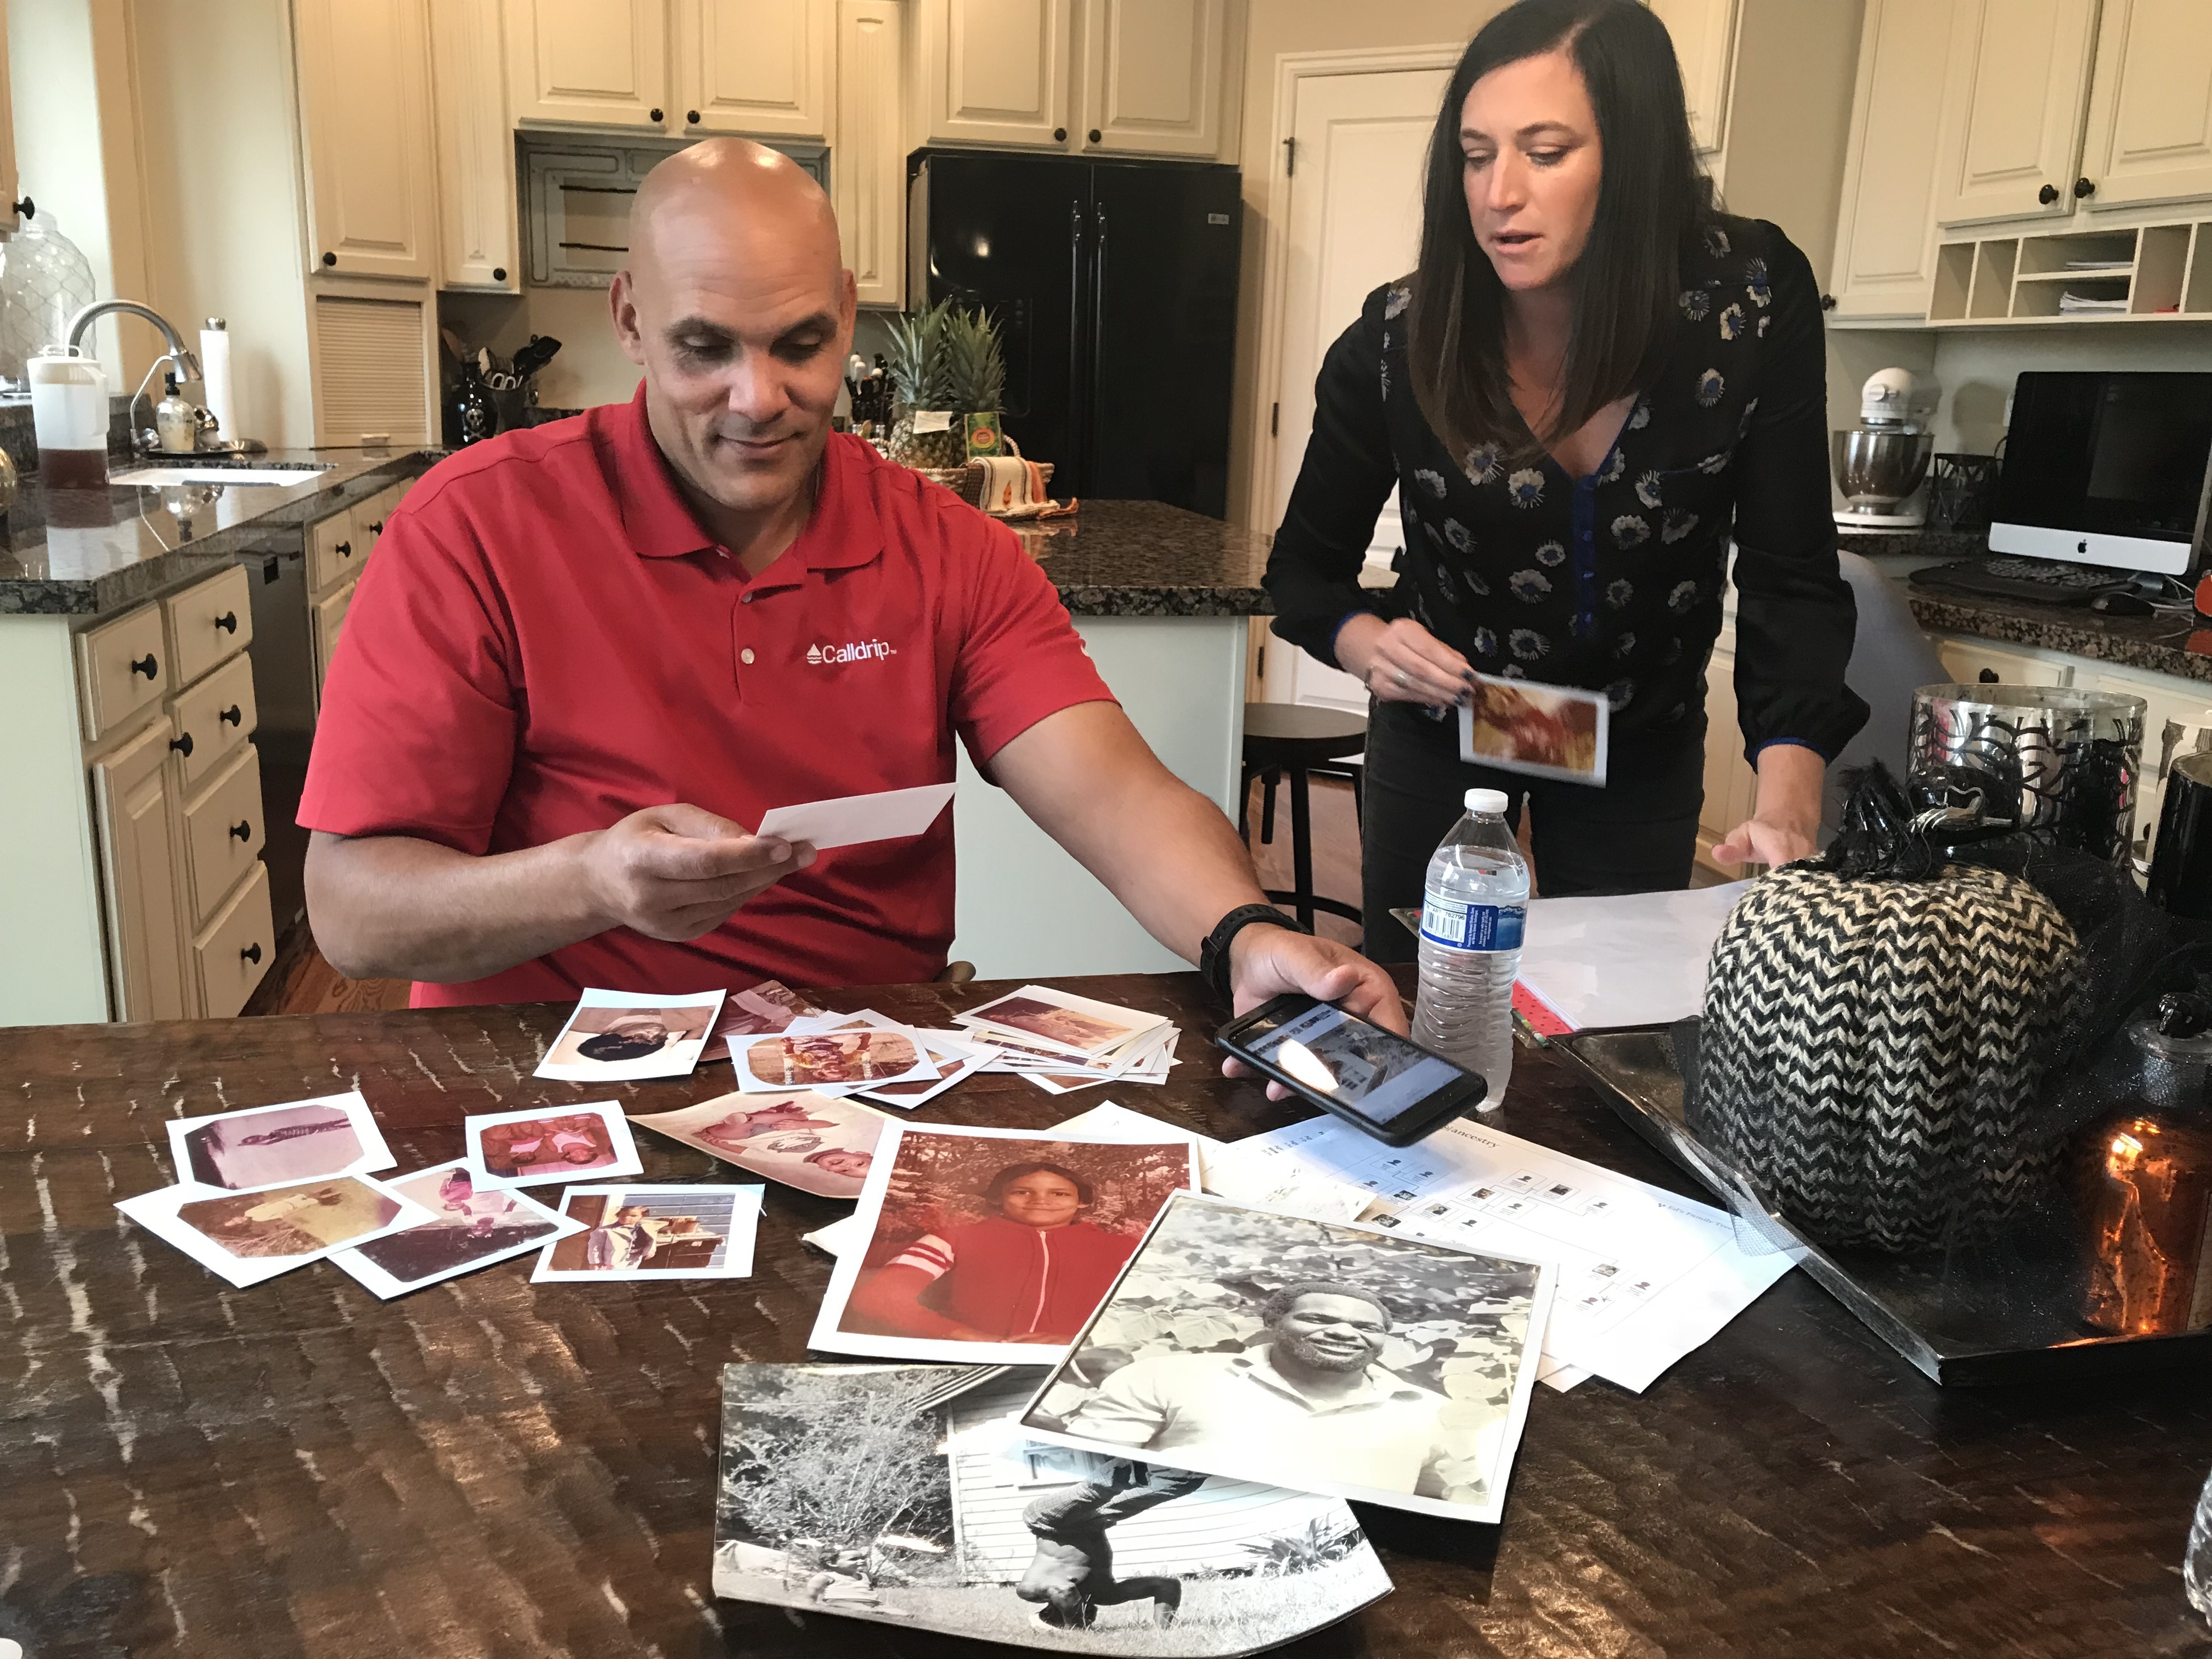 Ed and Jana Kehl look through photos of Ed as a child and old photos of his biological father, George Young.